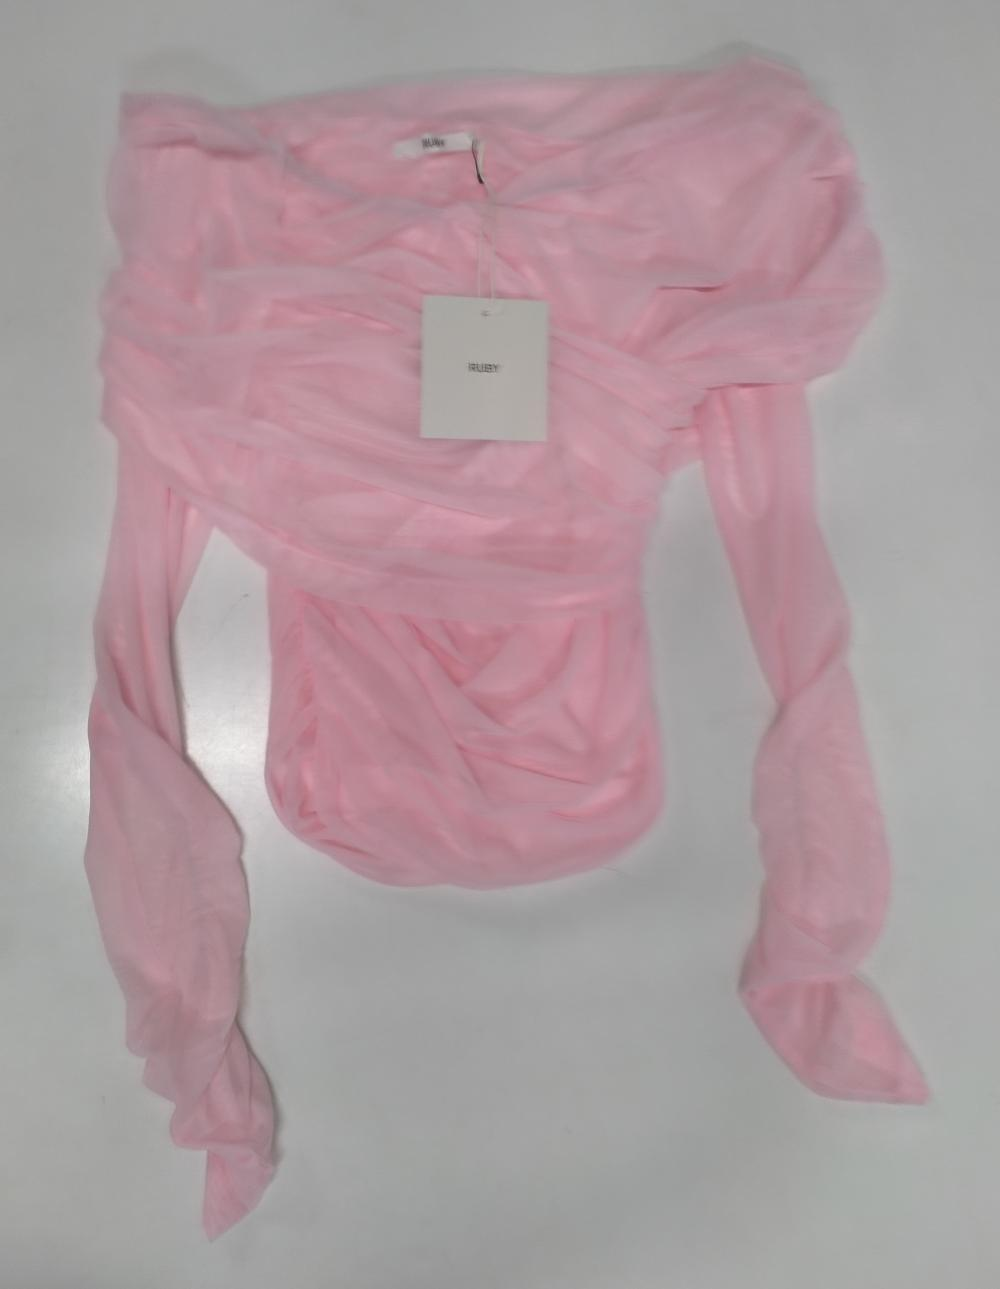 A designer top marked Ruby RR$199